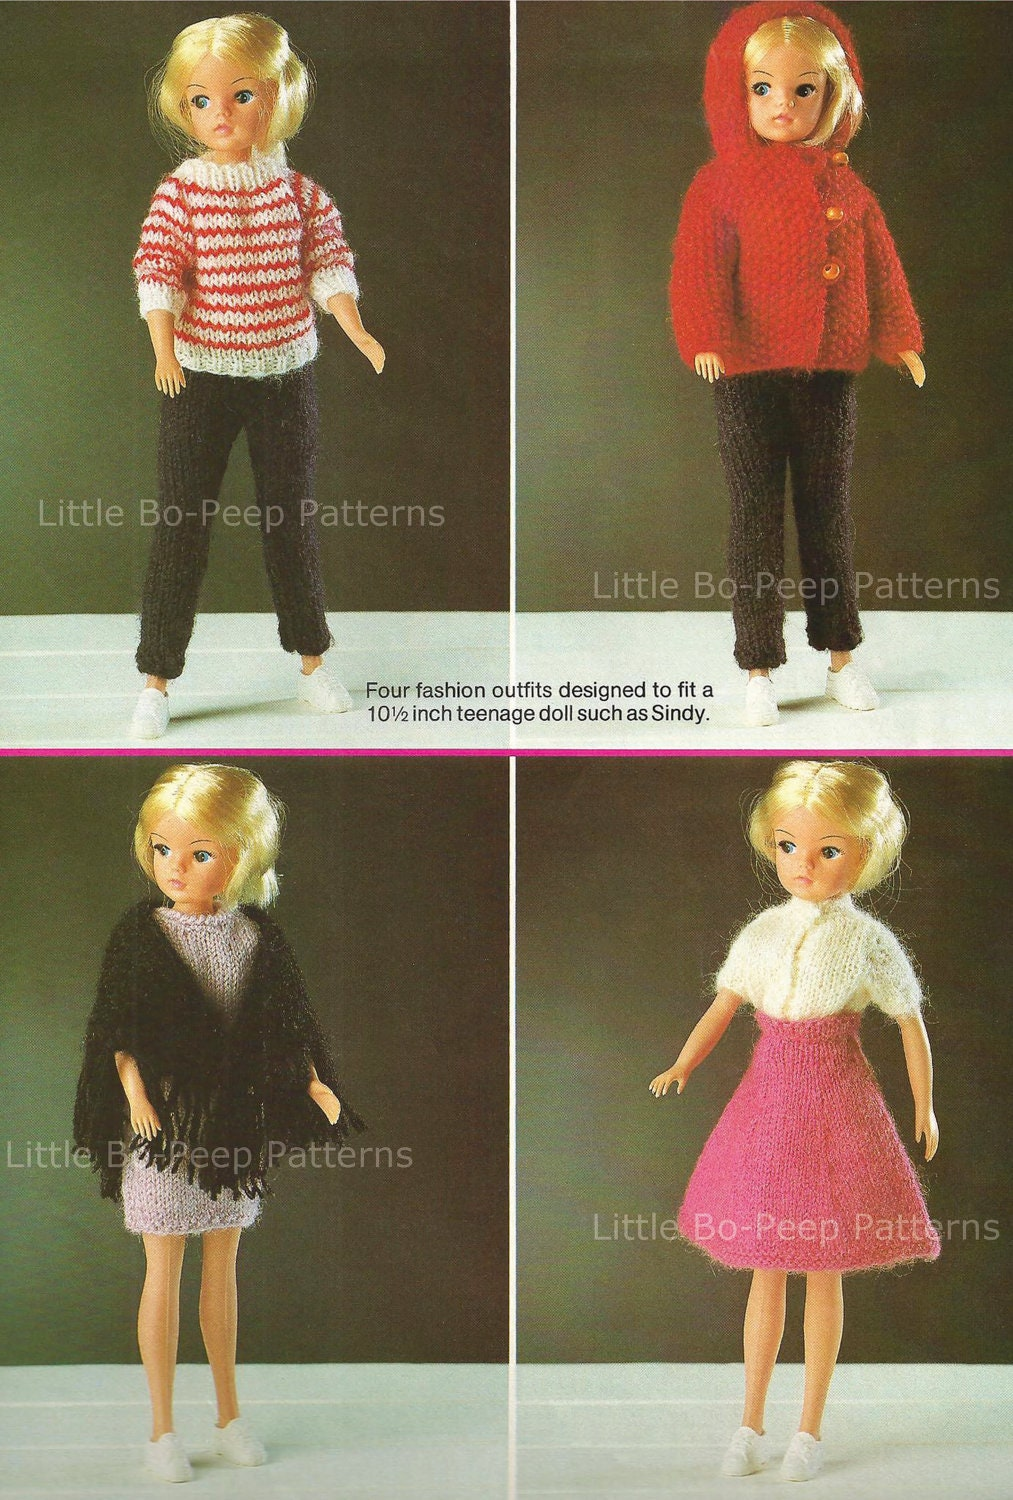 Knitting Patterns For Sindy Dolls : Fashion Doll Sindy type knit four fashion outfits by ...